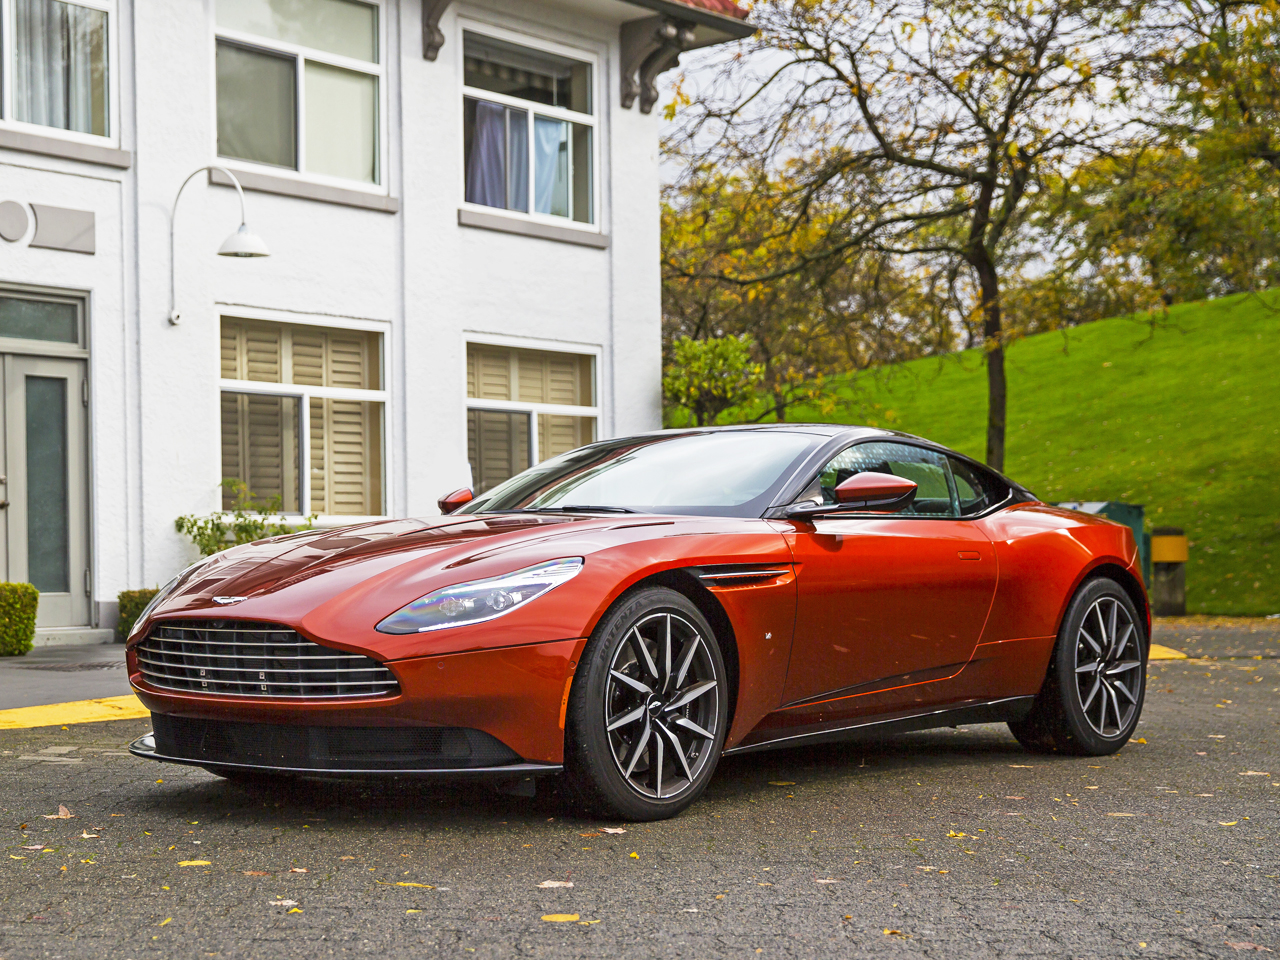 2017 aston martin db11 launch edition road test review | carcostcanada